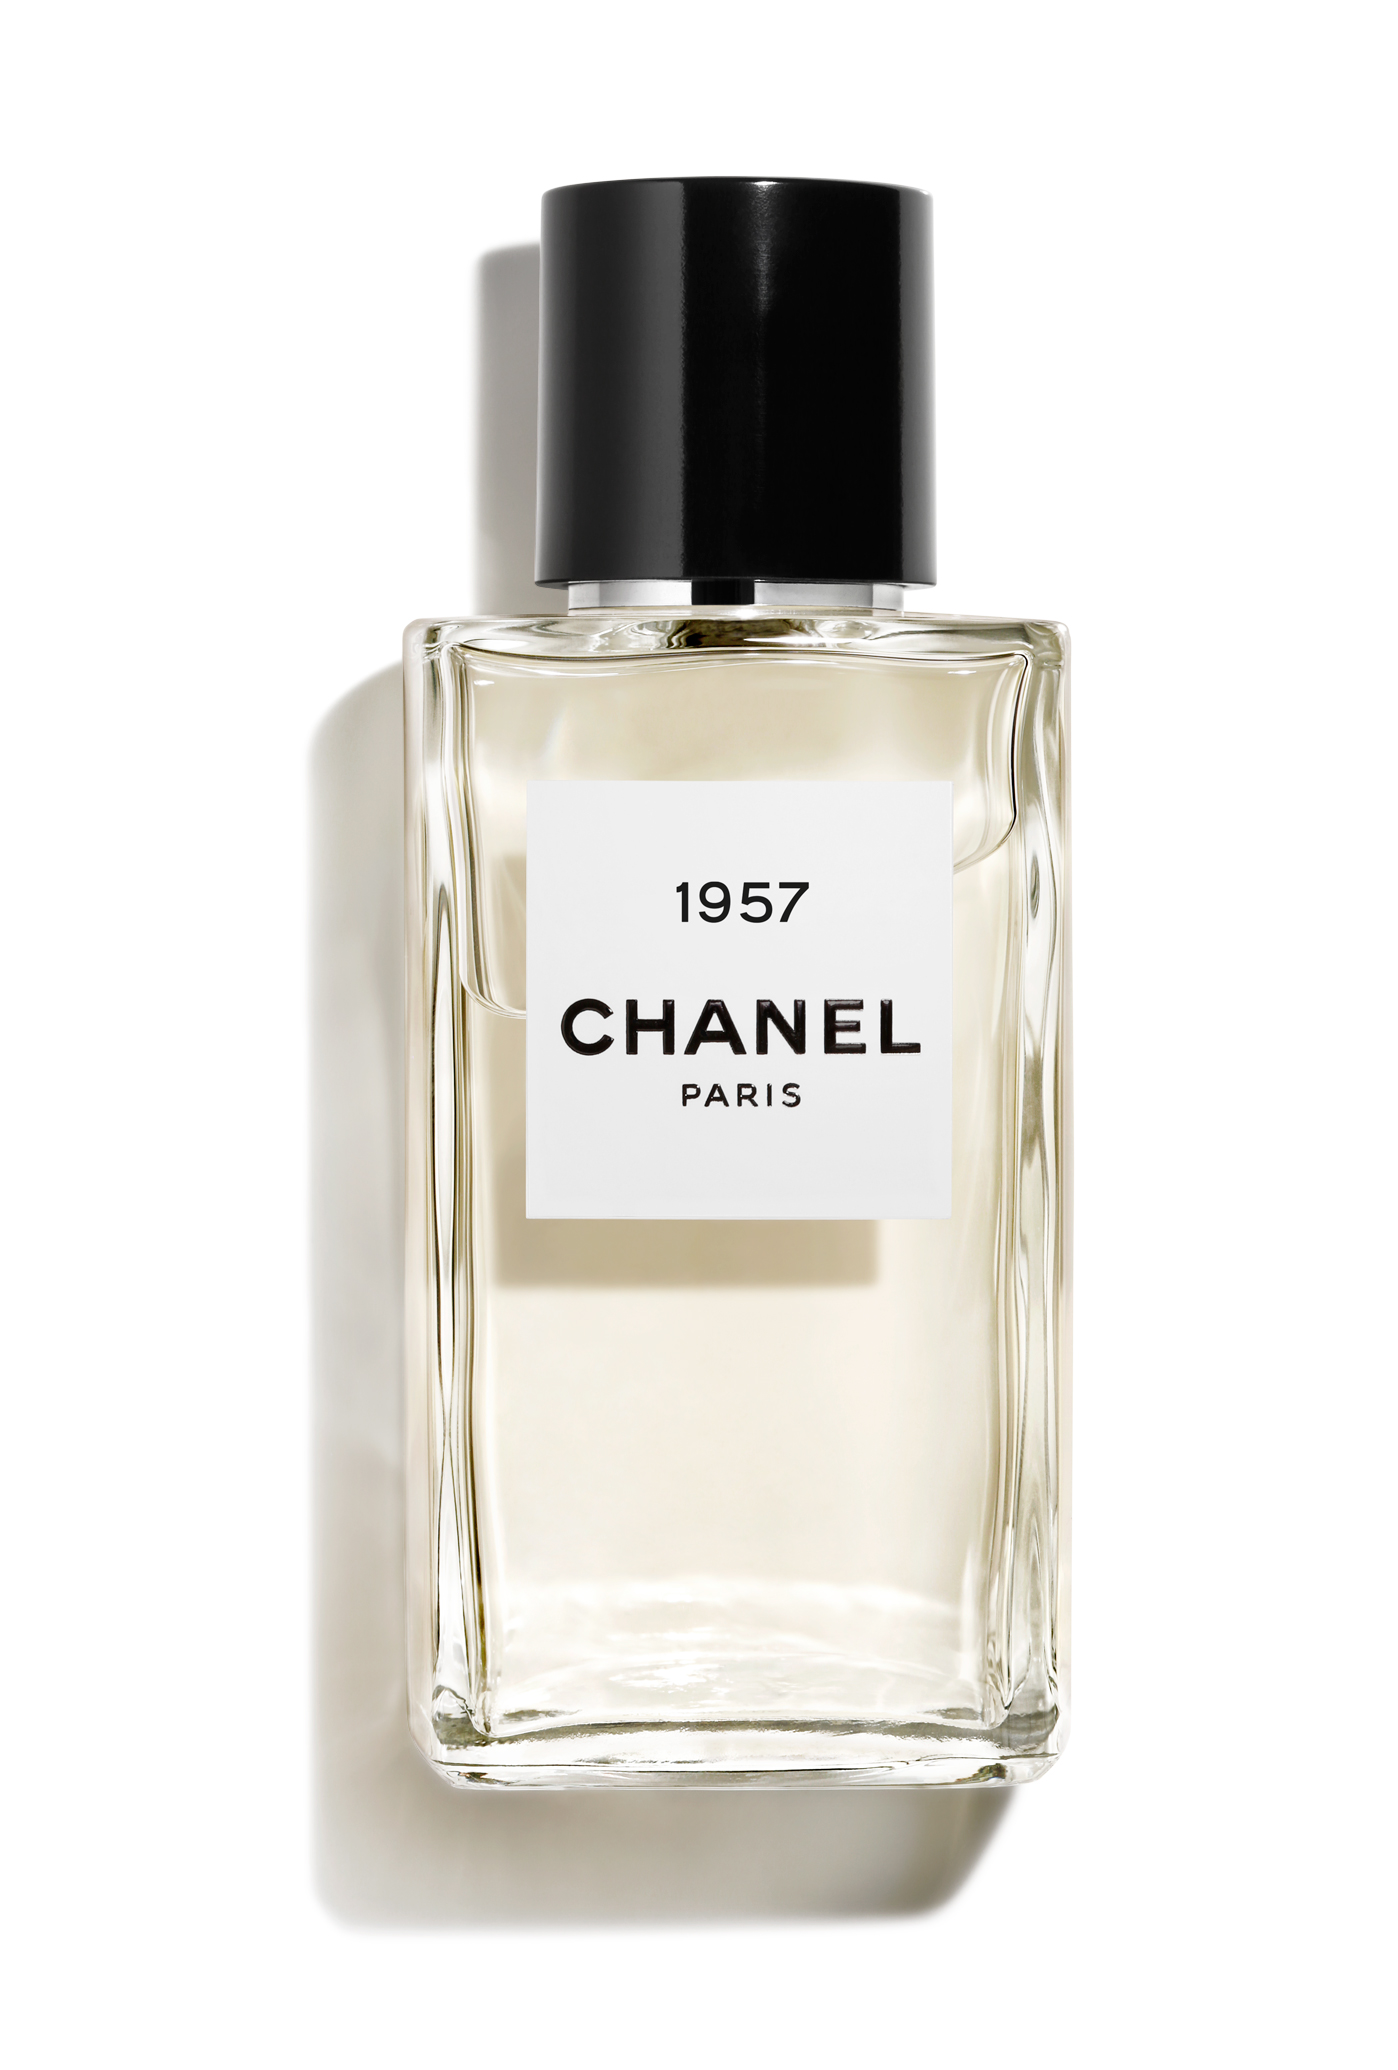 93081919 Chanel 1957 Chanel for women and men